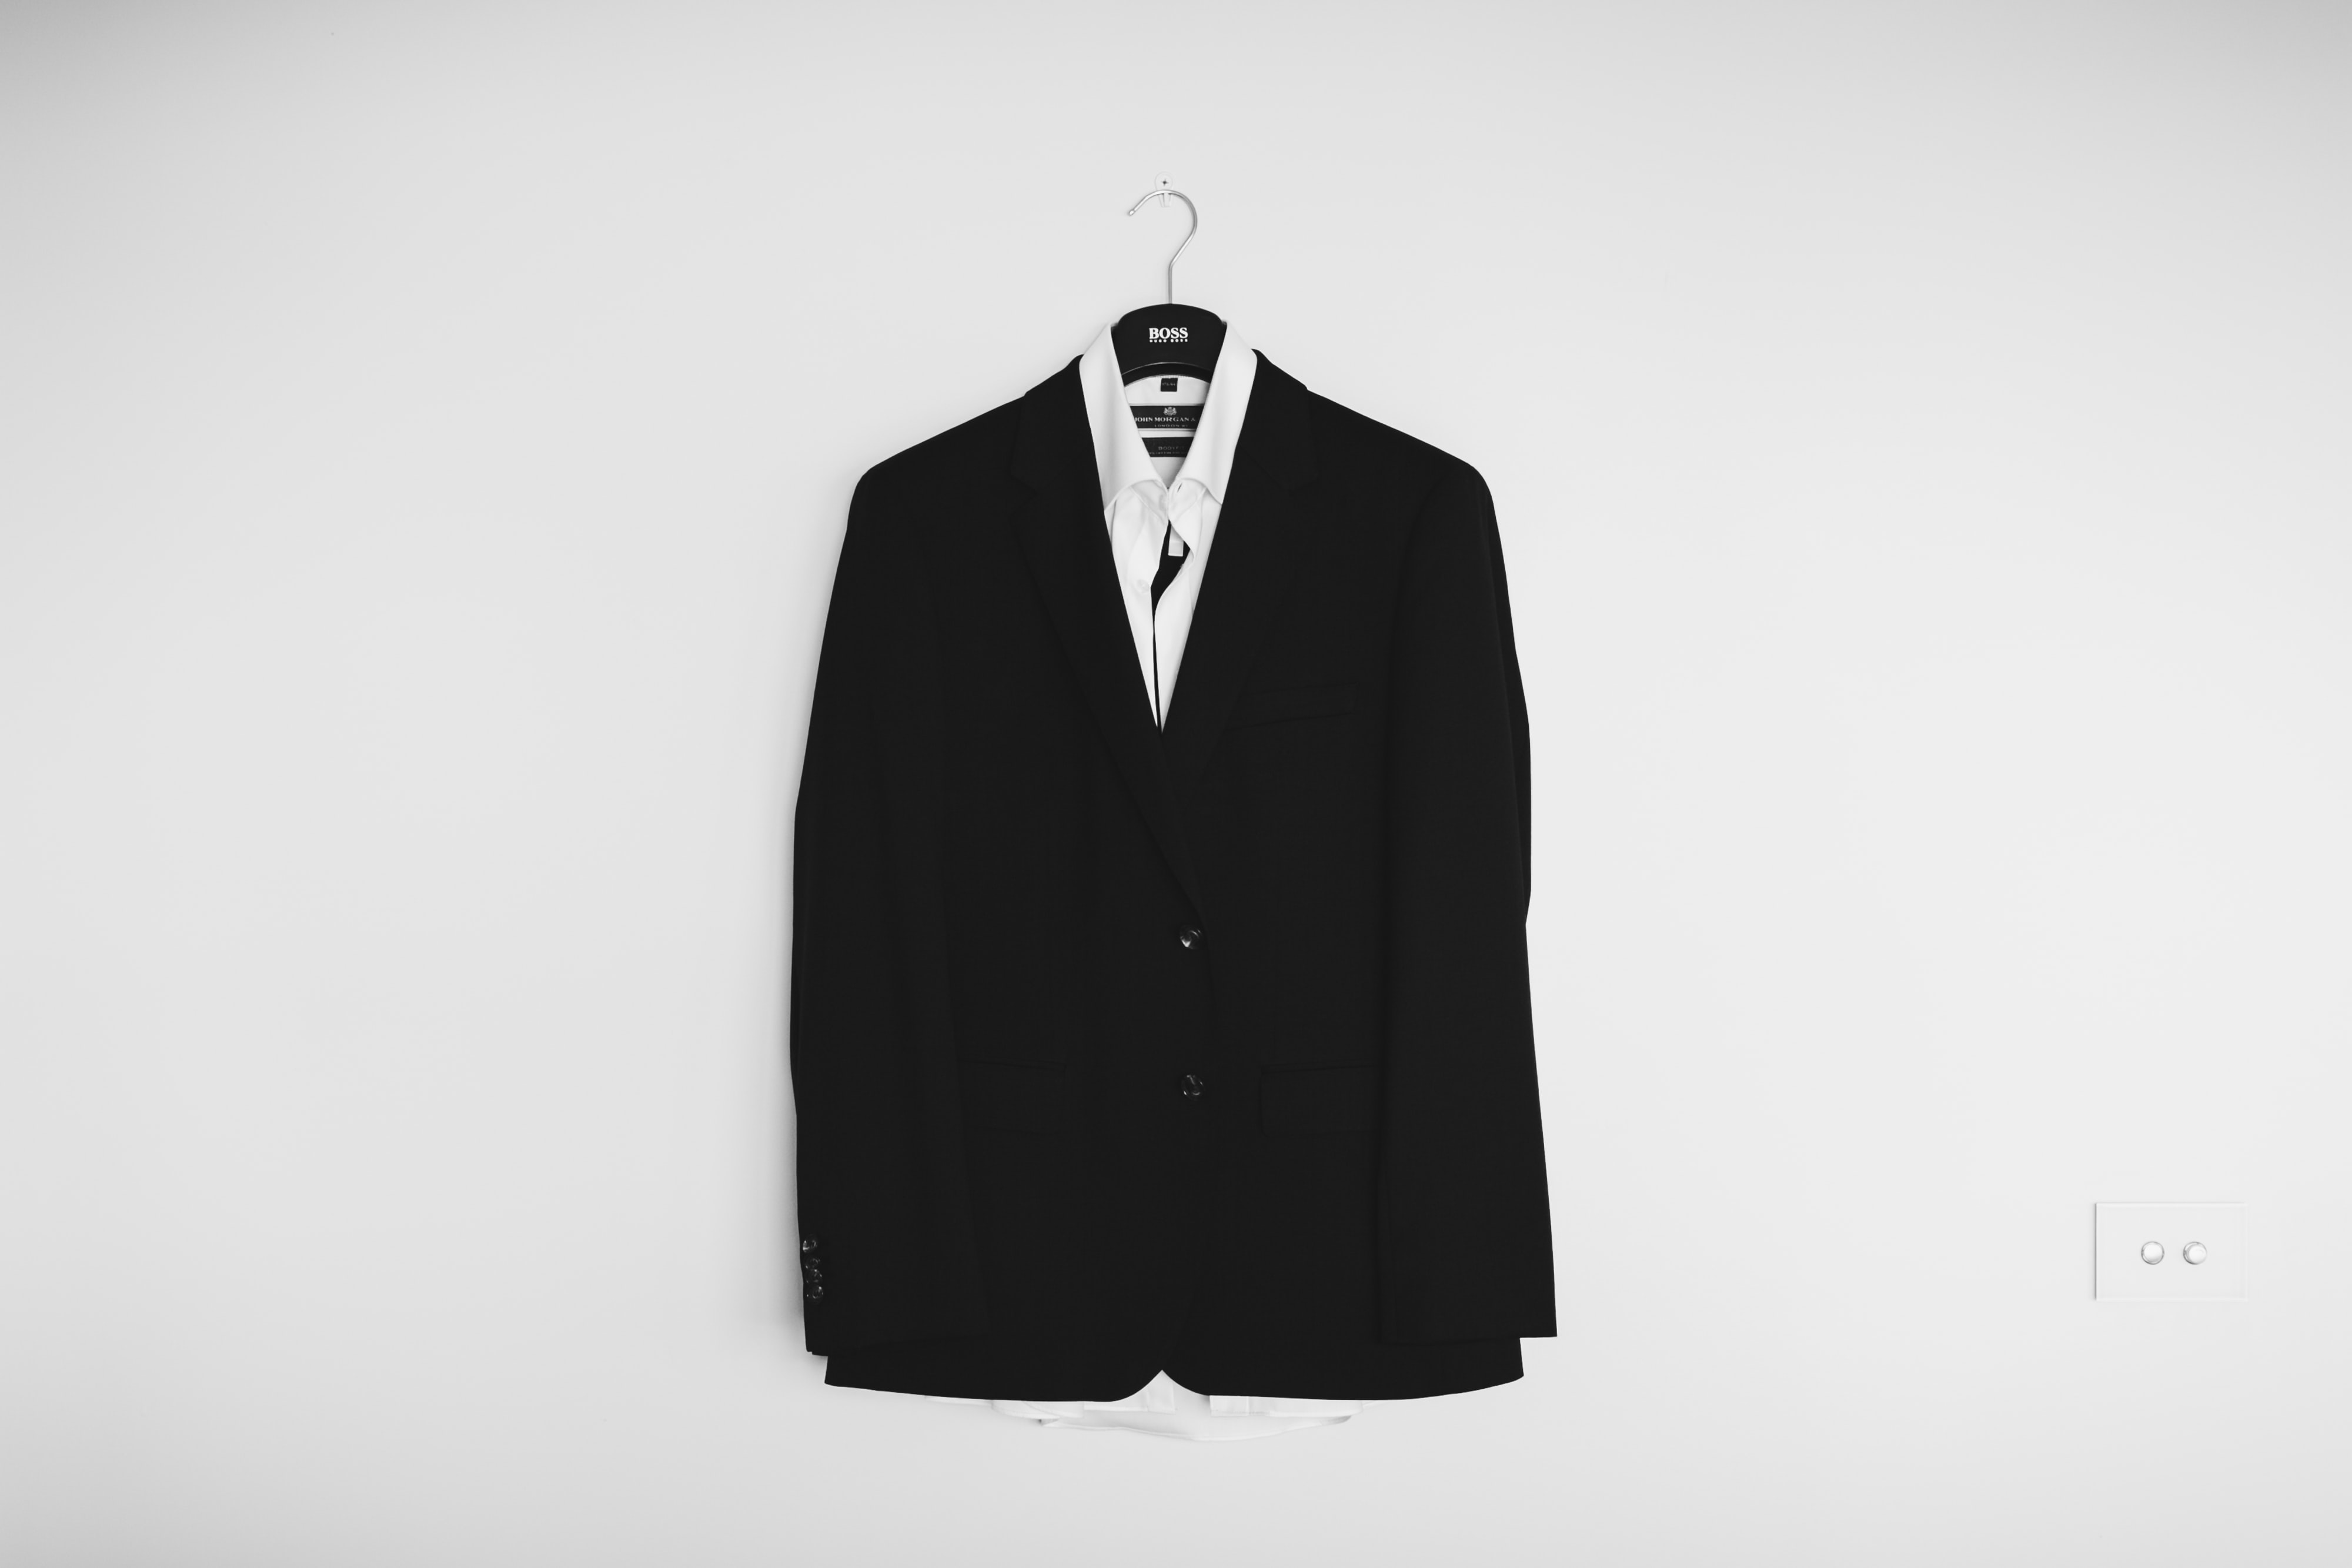 A black suit jacket on a hanger on a white wall